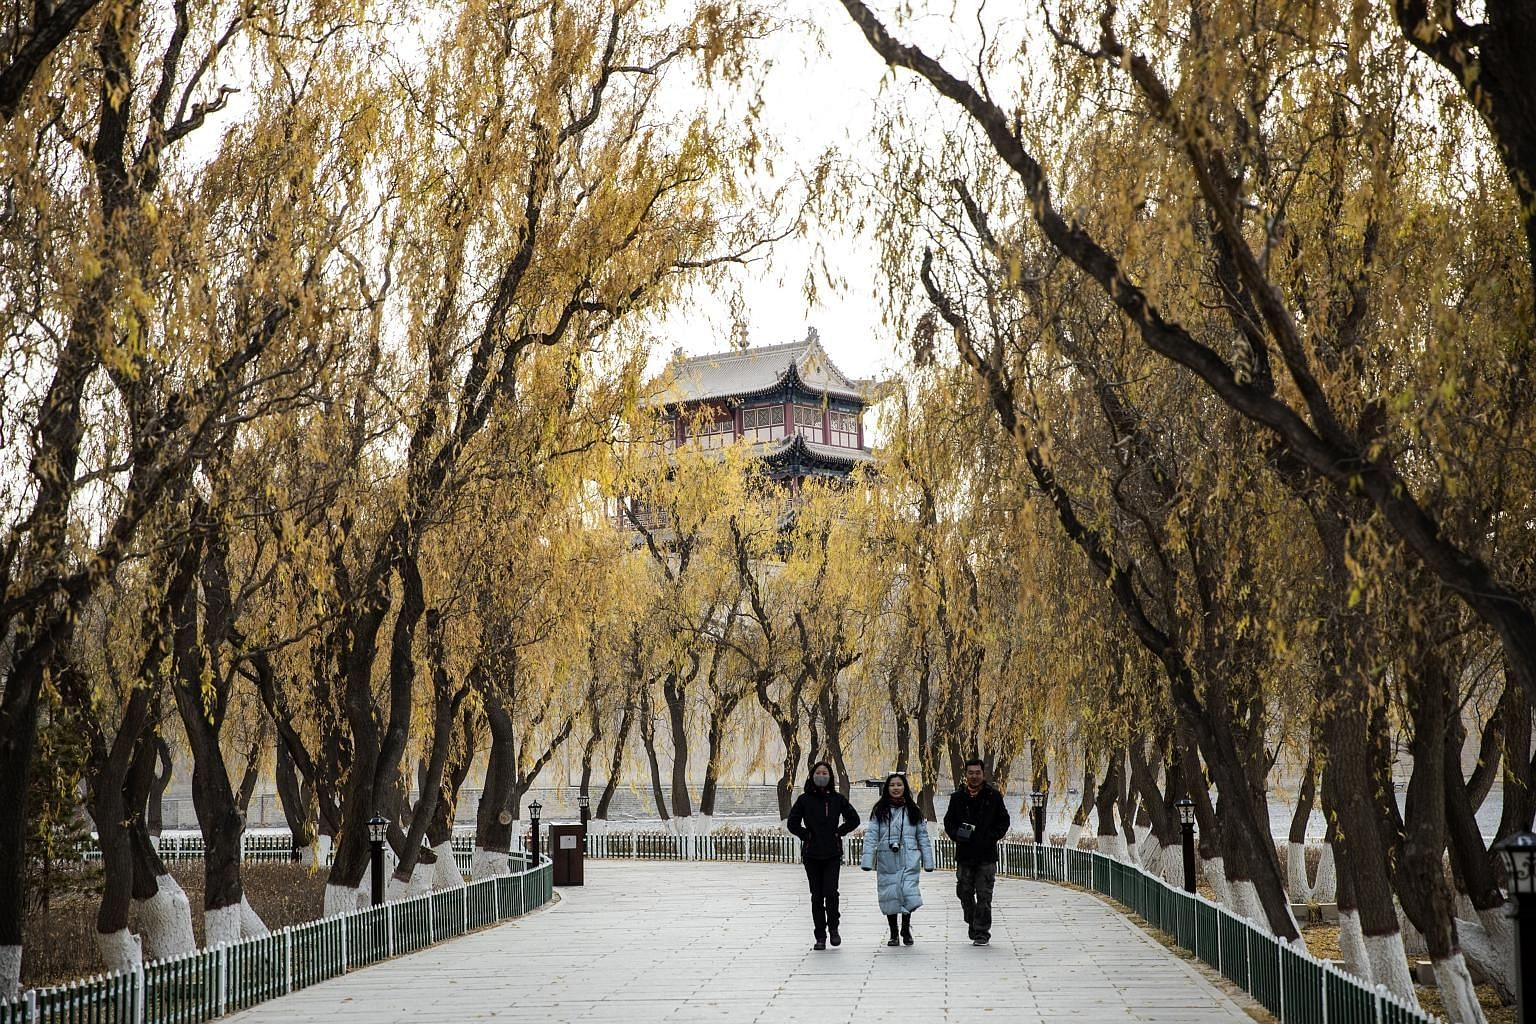 The Jiayuguan fortress in Gansu province is the westernmost pass of the Great Wall of China. In the Chinese national anthem, the Chinese talked about rebuilding a new Great Wall. This is because it is difficult enough organising the Han people and ot